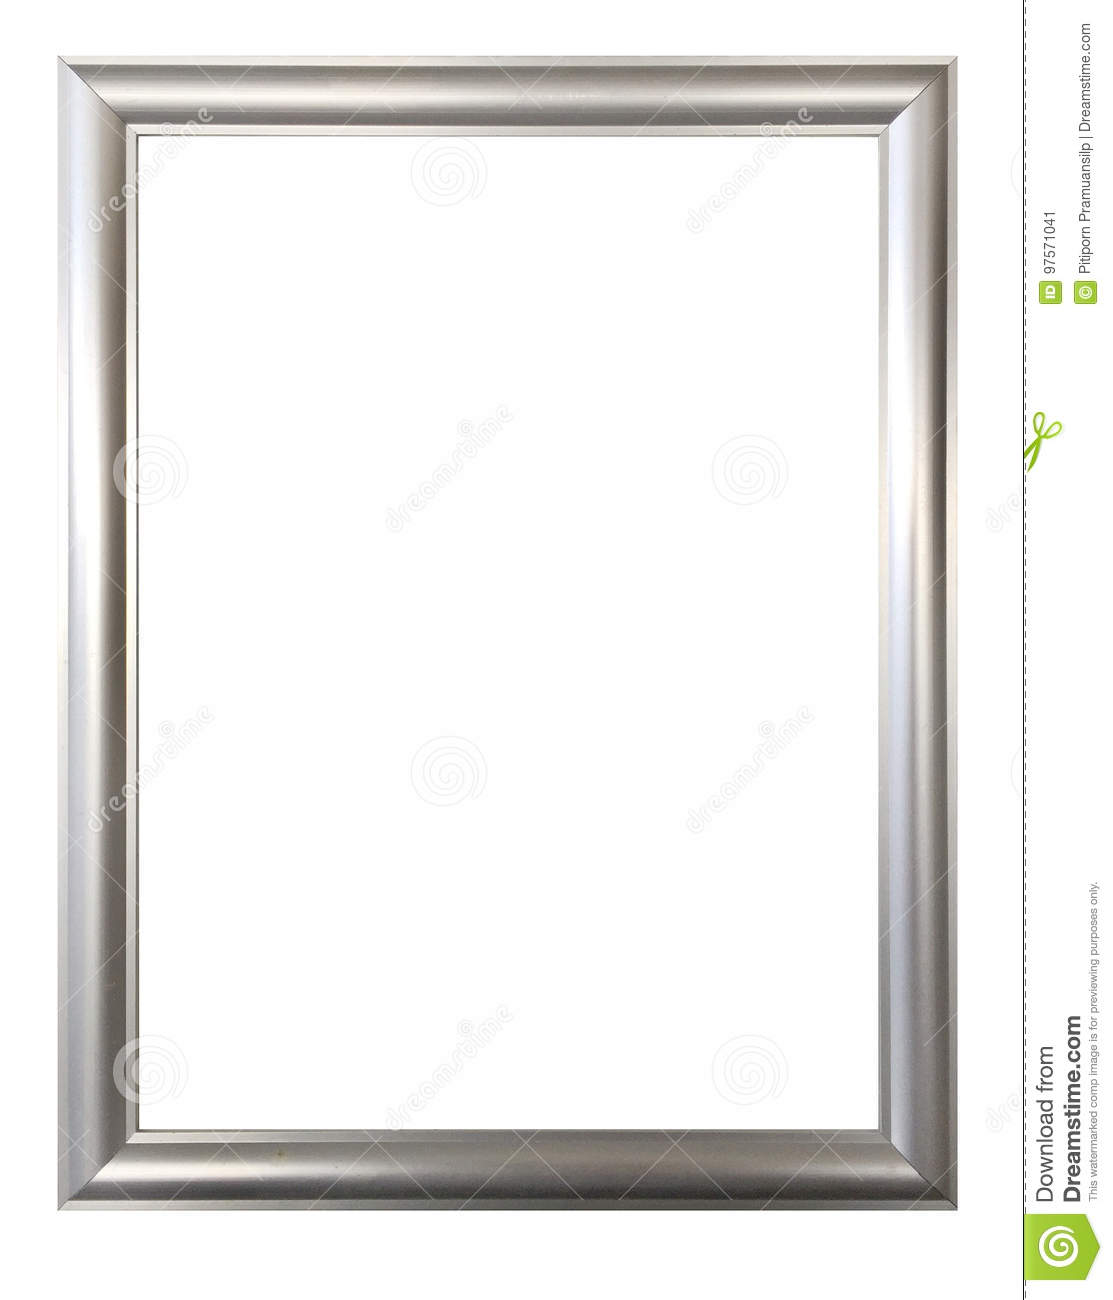 Silver Frame For Paintings Mirrors Or Photos Stock Image Image Of